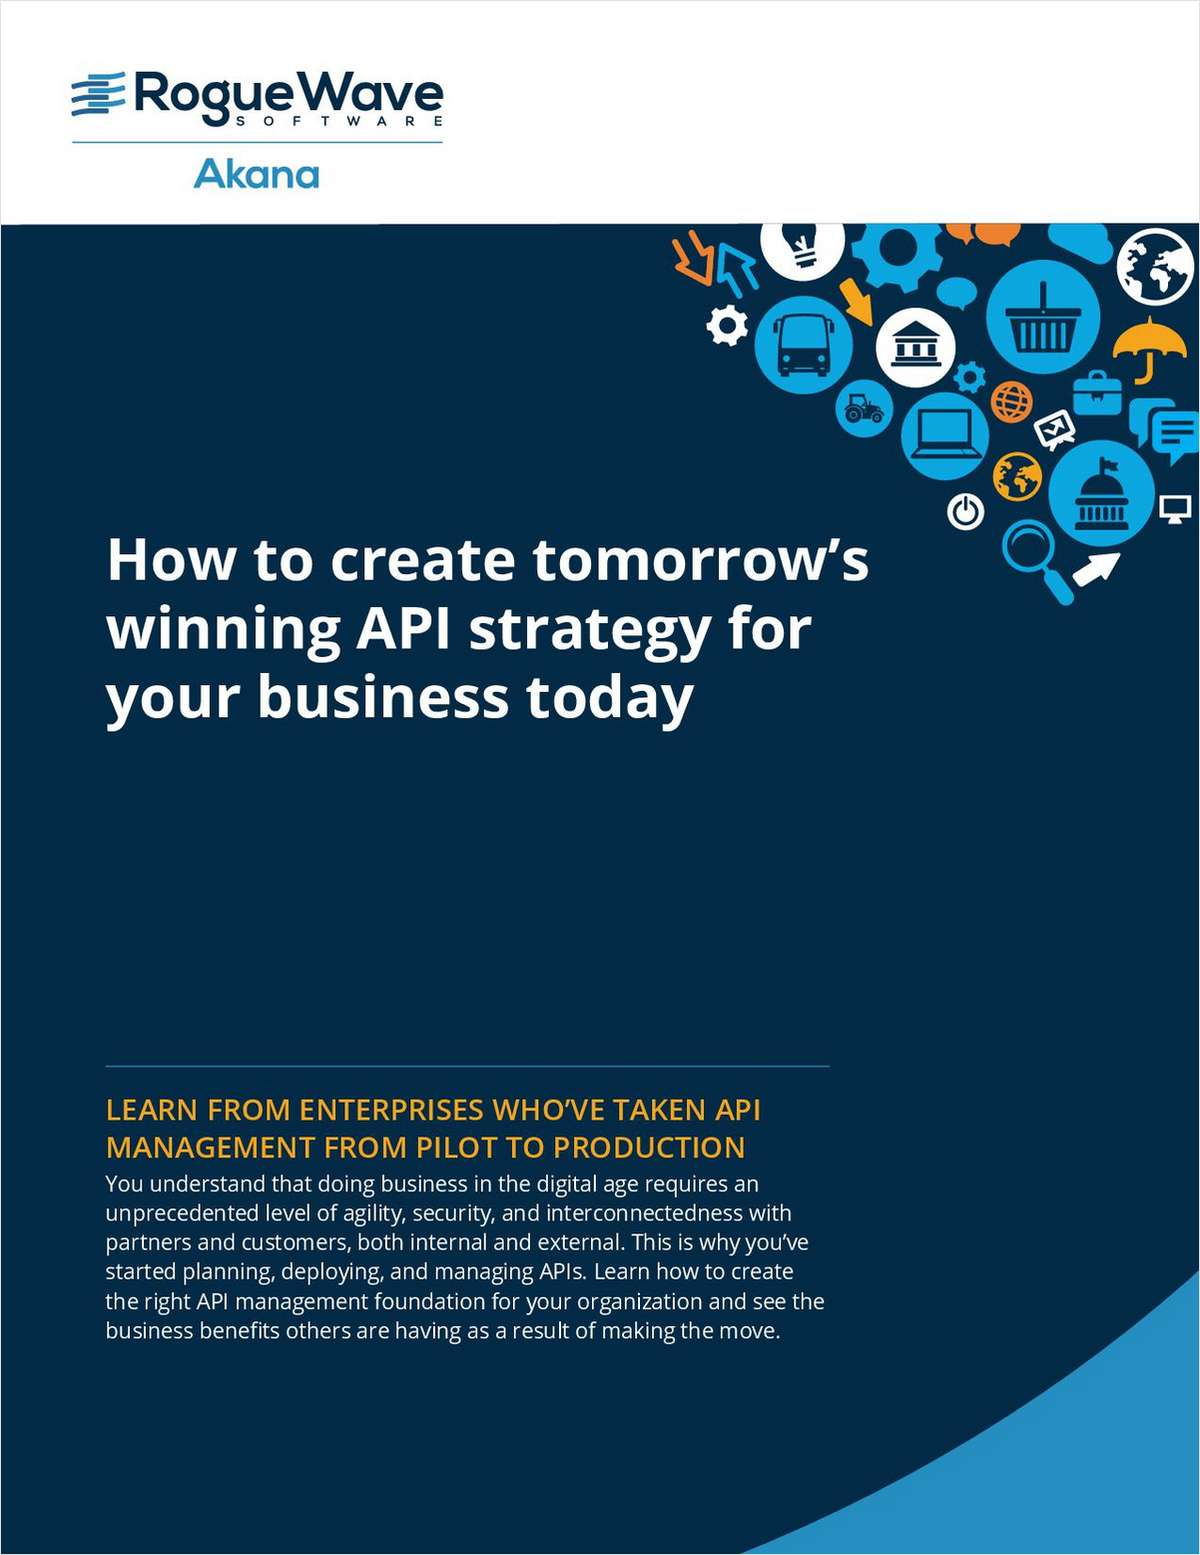 How to create tomorrow's winning API strategy for your business today